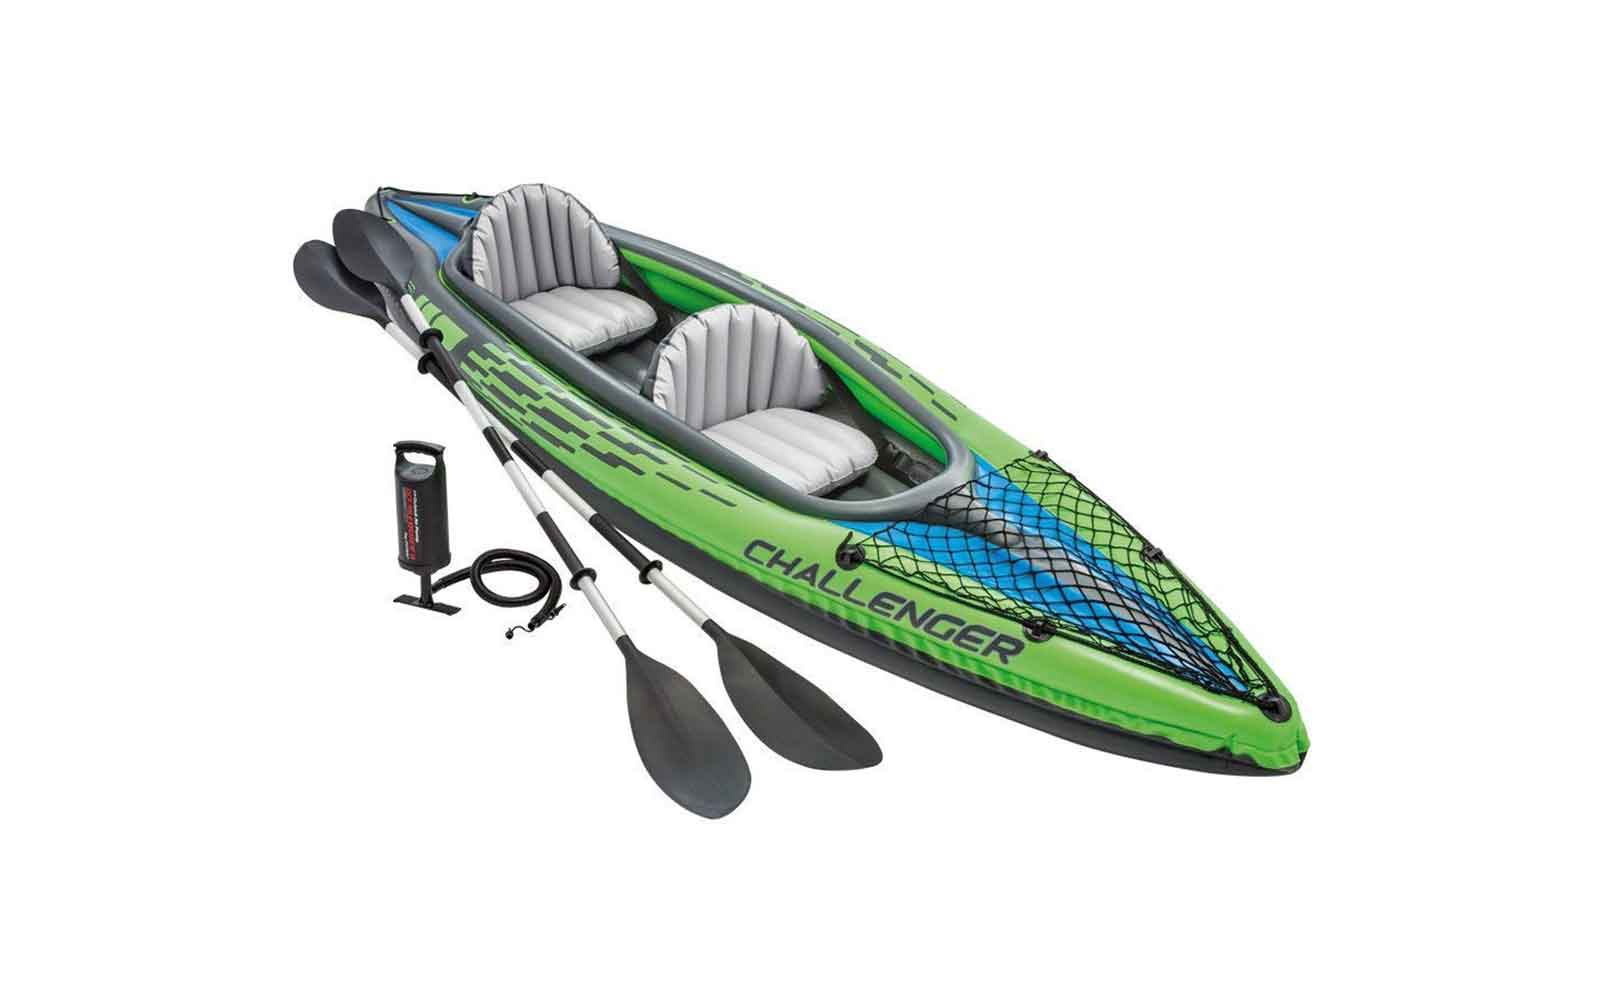 This kayak will fold up and fit in a backpack — and it's under $100 on Amazon right now